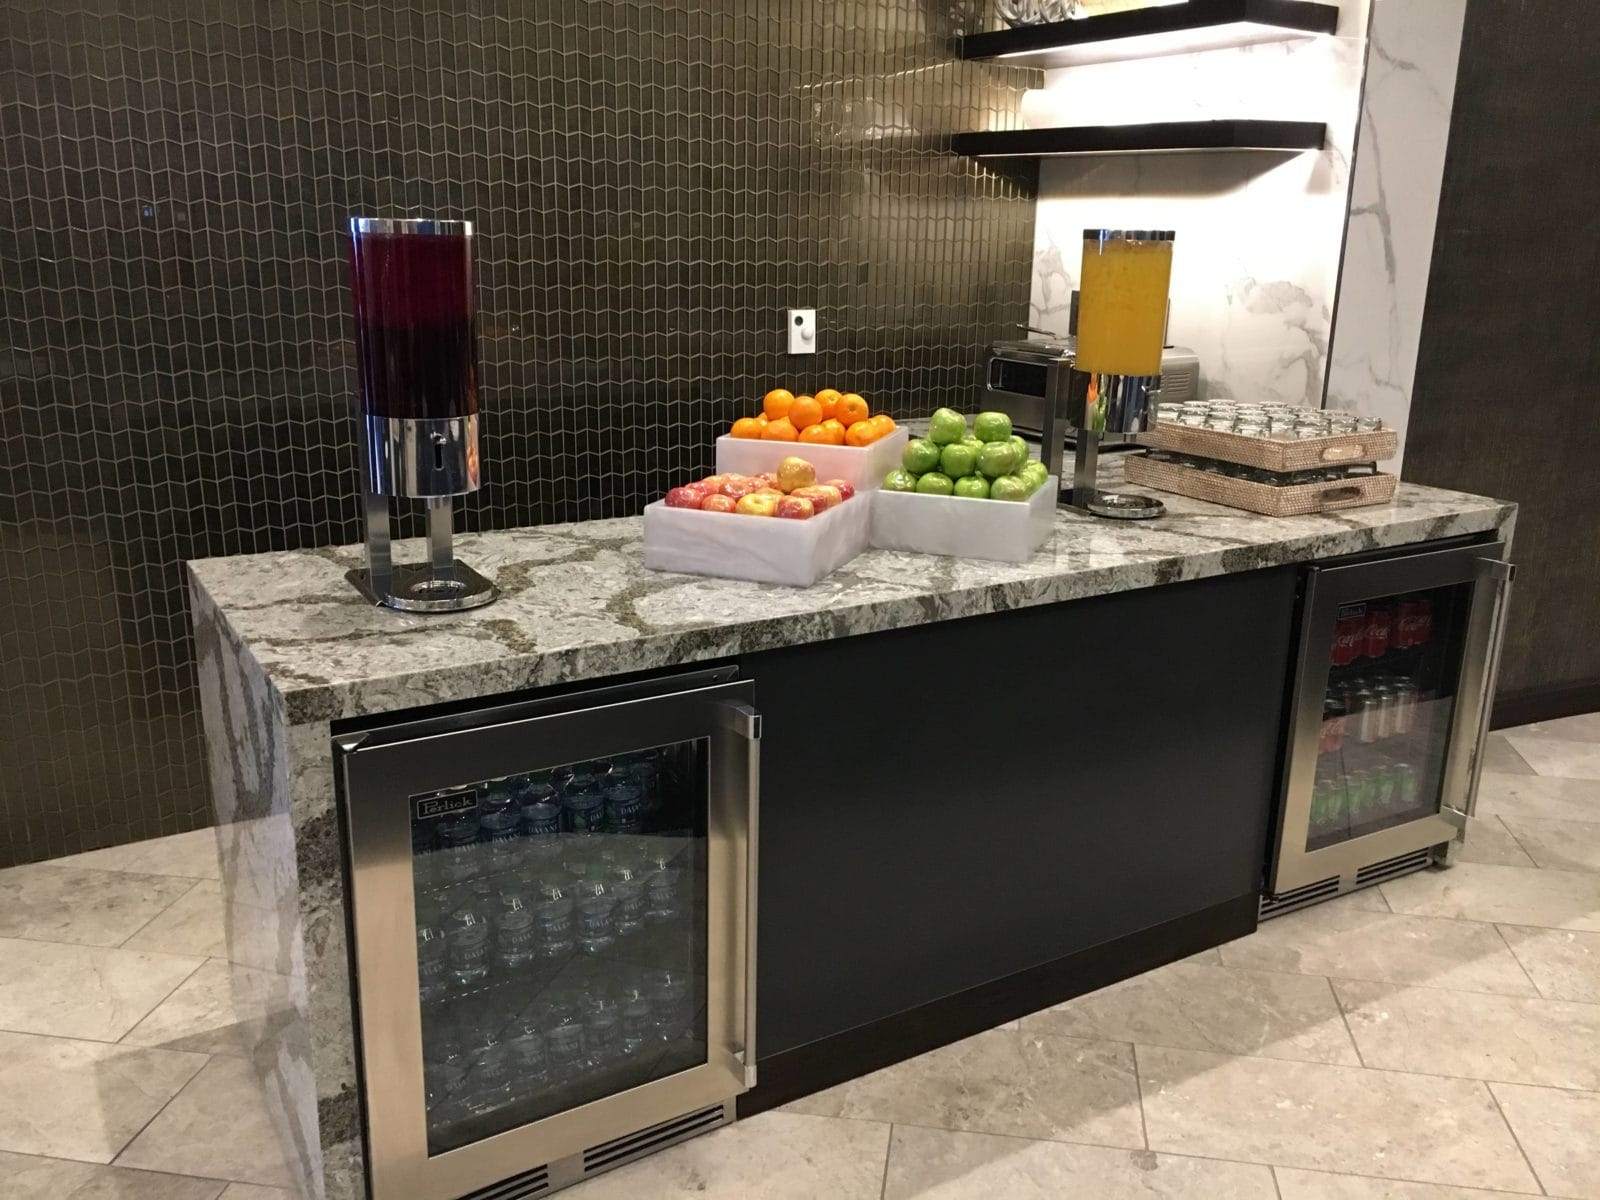 United Polaris Lounge LAX - Getränkestation 1